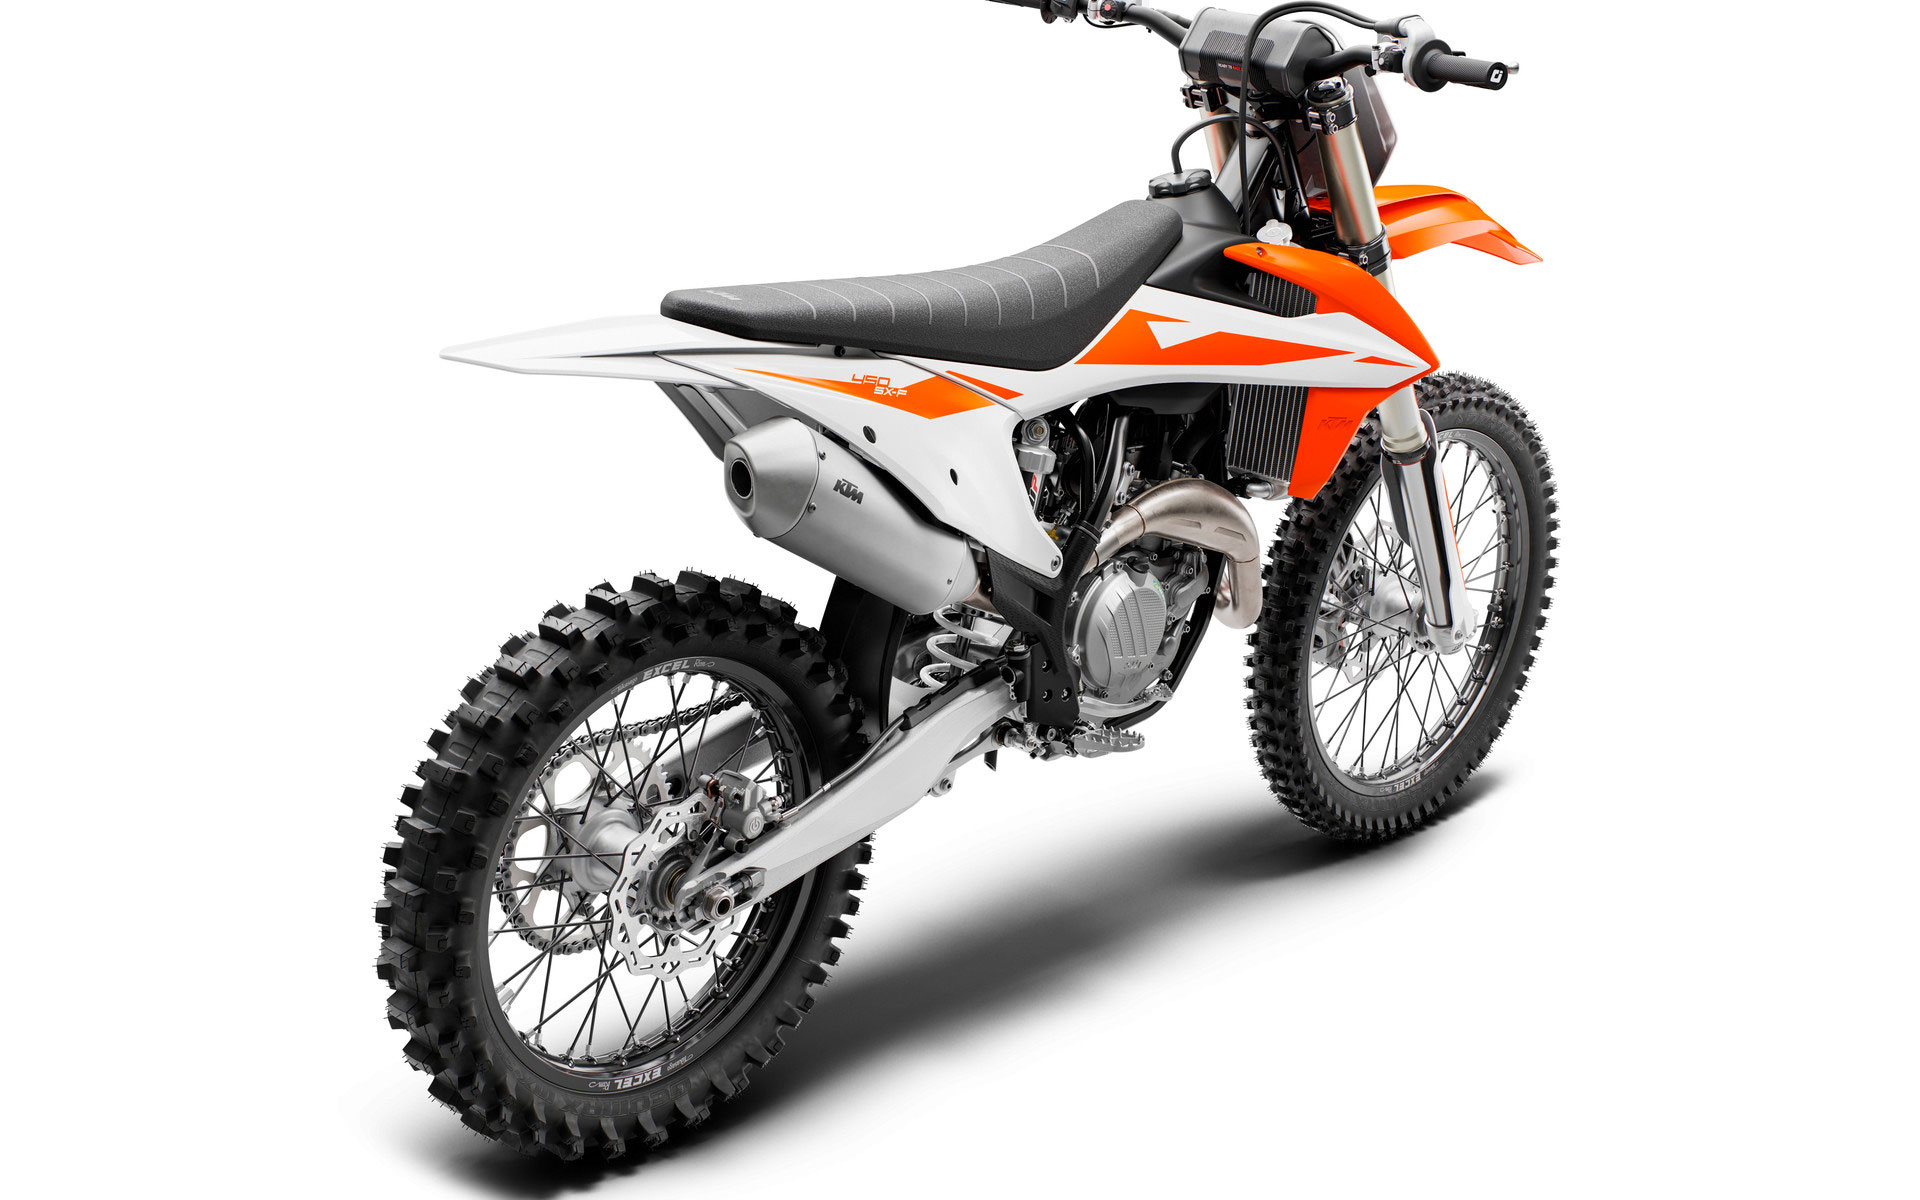 2019 KTM 450 SX-F Guide • Total Motorcycle